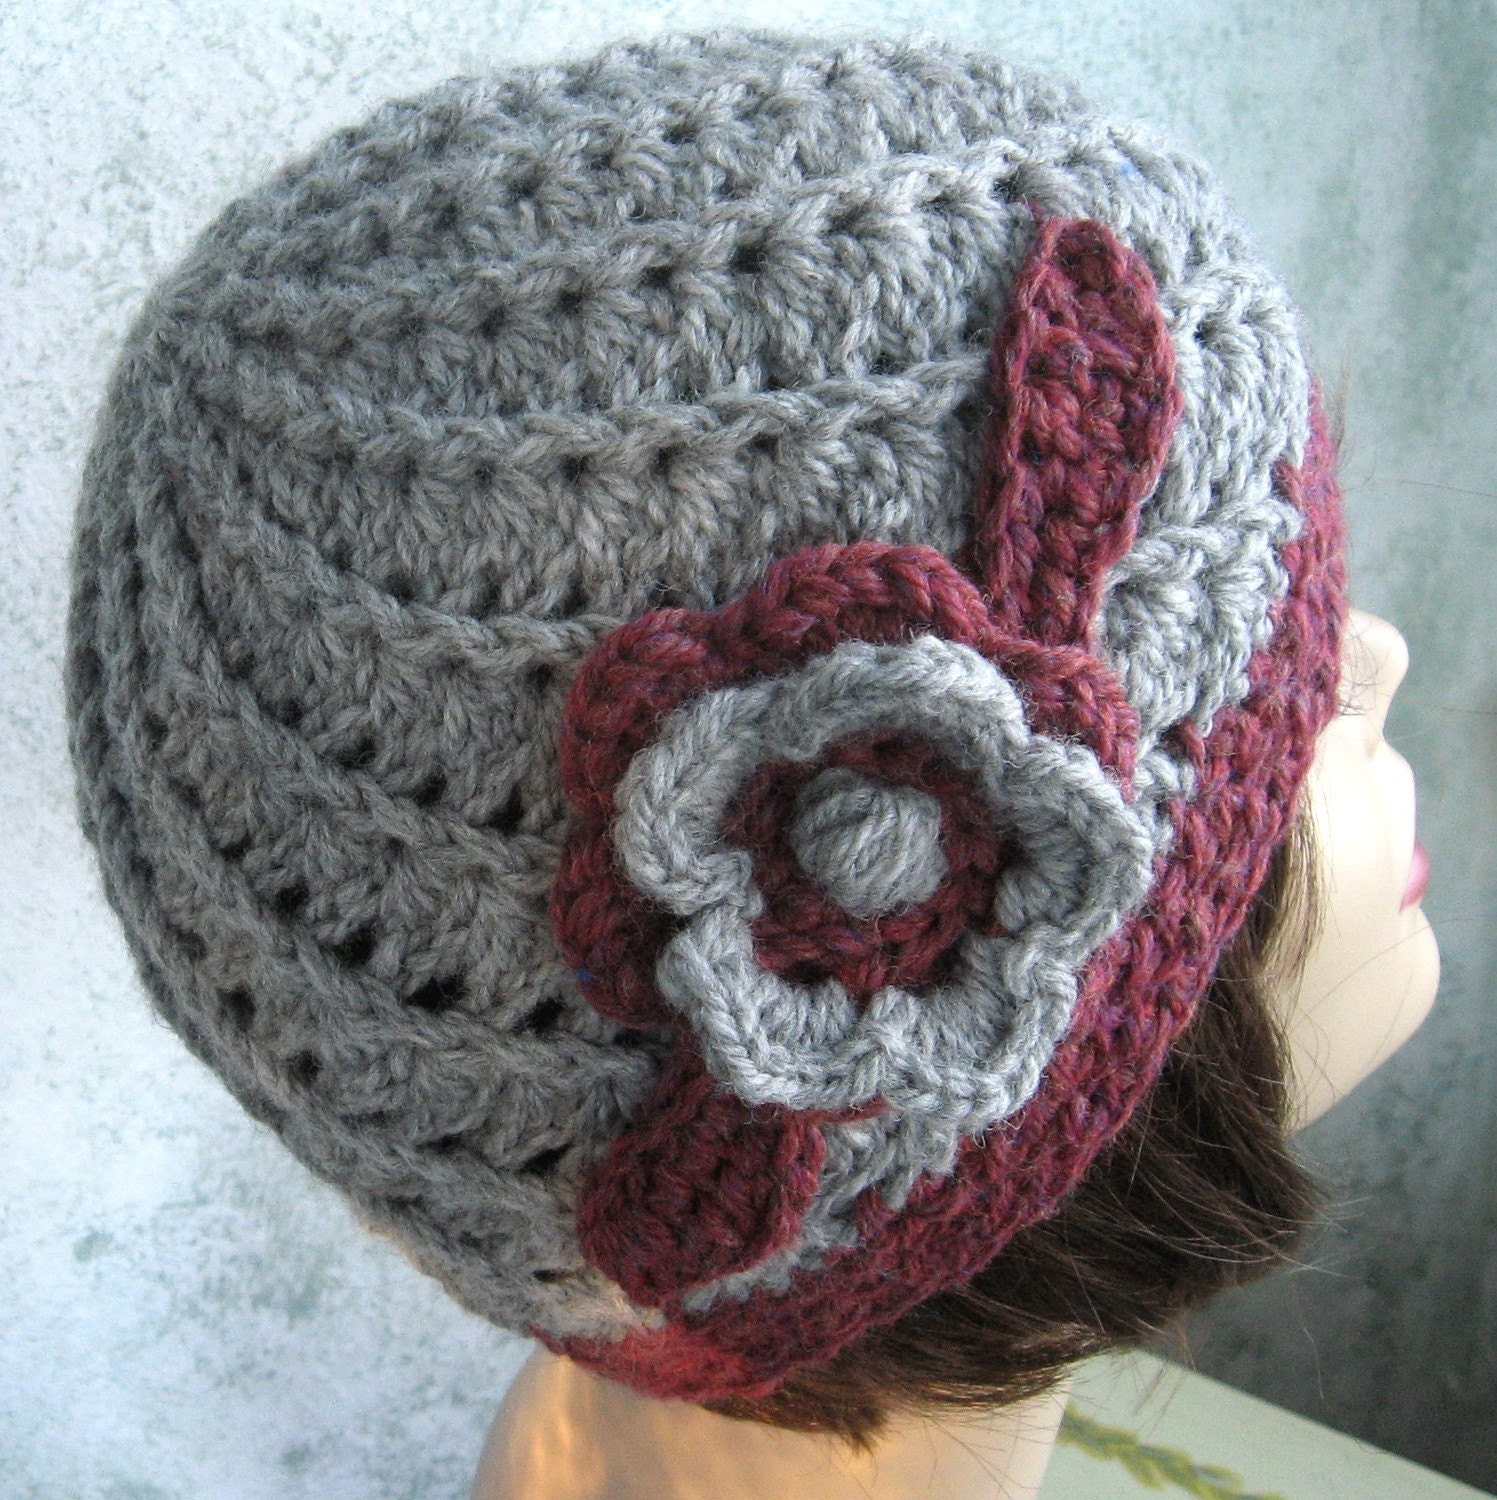 Crocheting Hats : Womens Crochet Hat Pattern Spiral Rib With Double by kalliedesigns